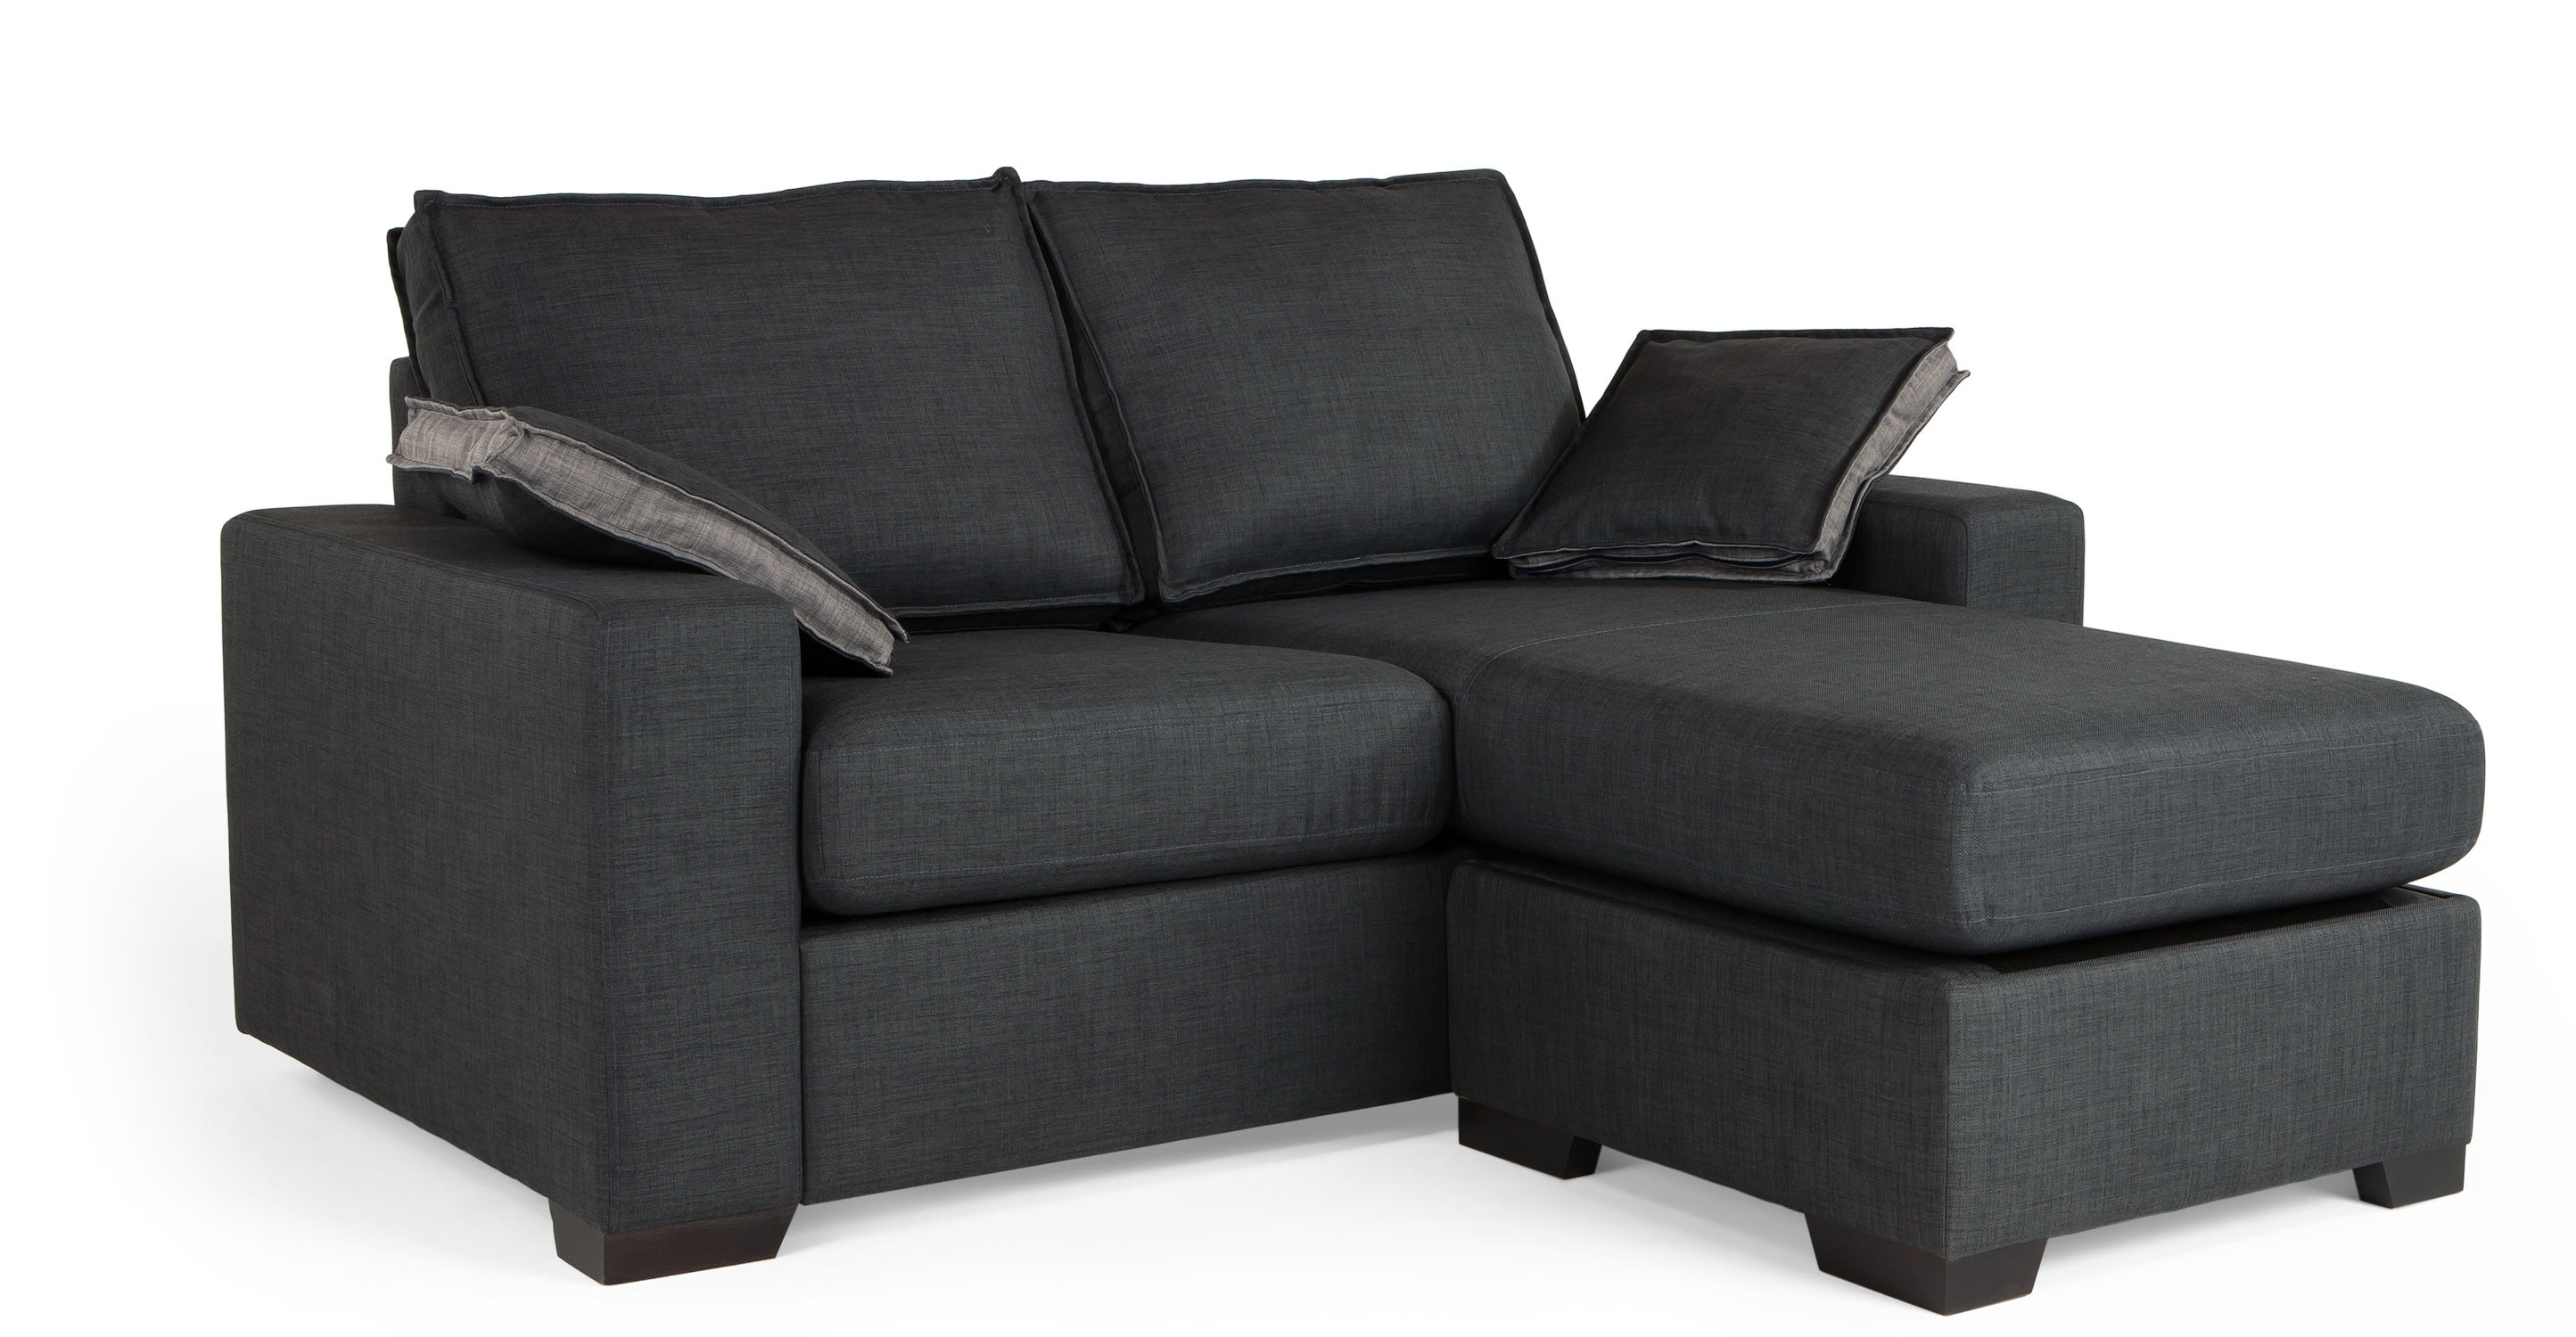 Famous Sectional Sofa Design: Recomendation Sofa Bed Sectionals Hide A Within 2 Seat Sectional Sofas (View 2 of 20)